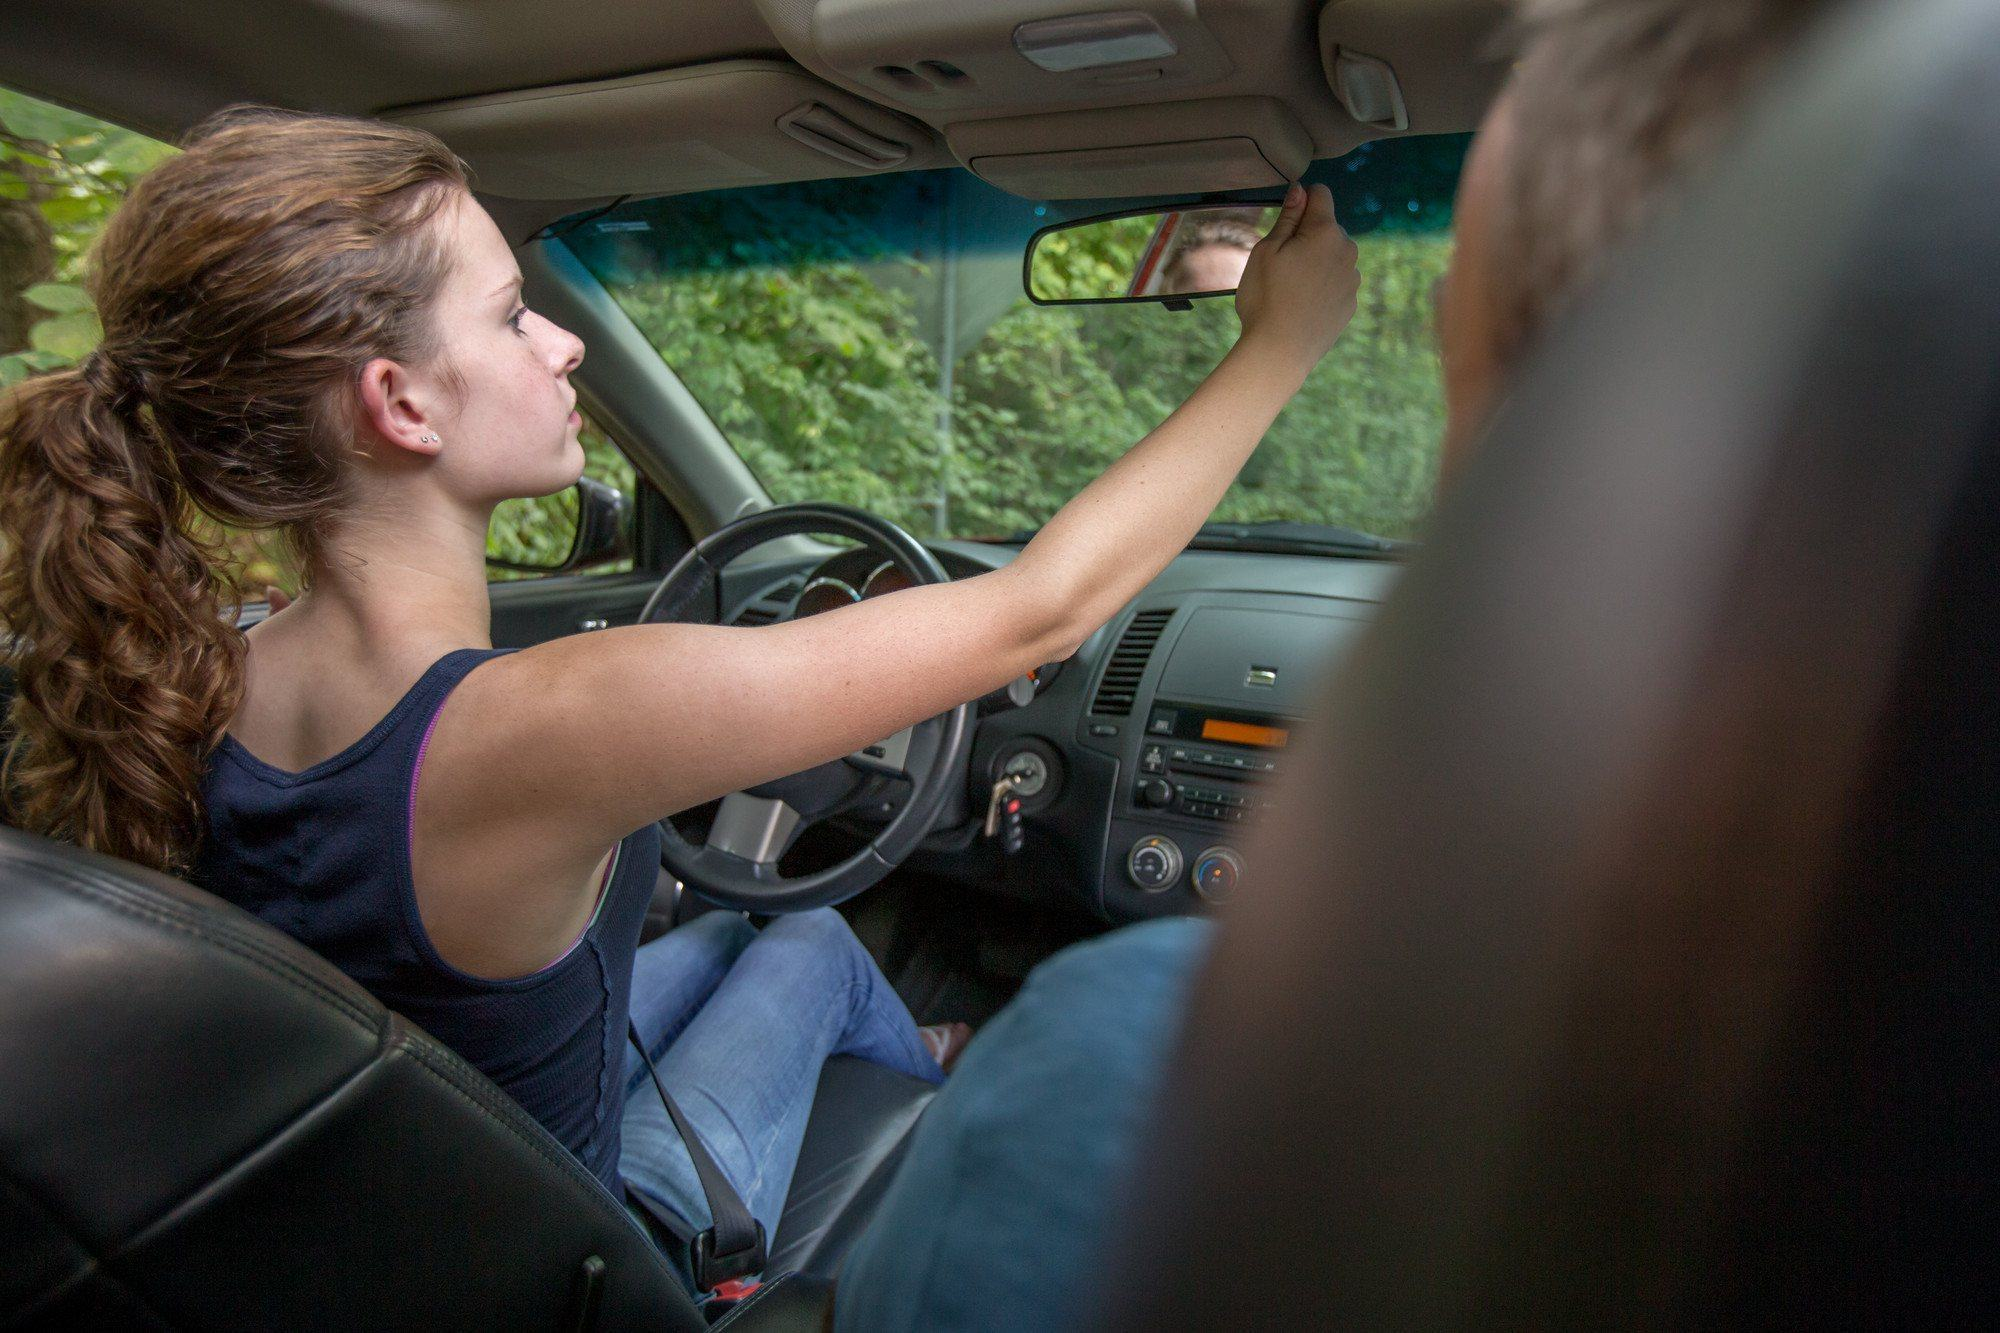 Renting A Car Vs Driving Your Own